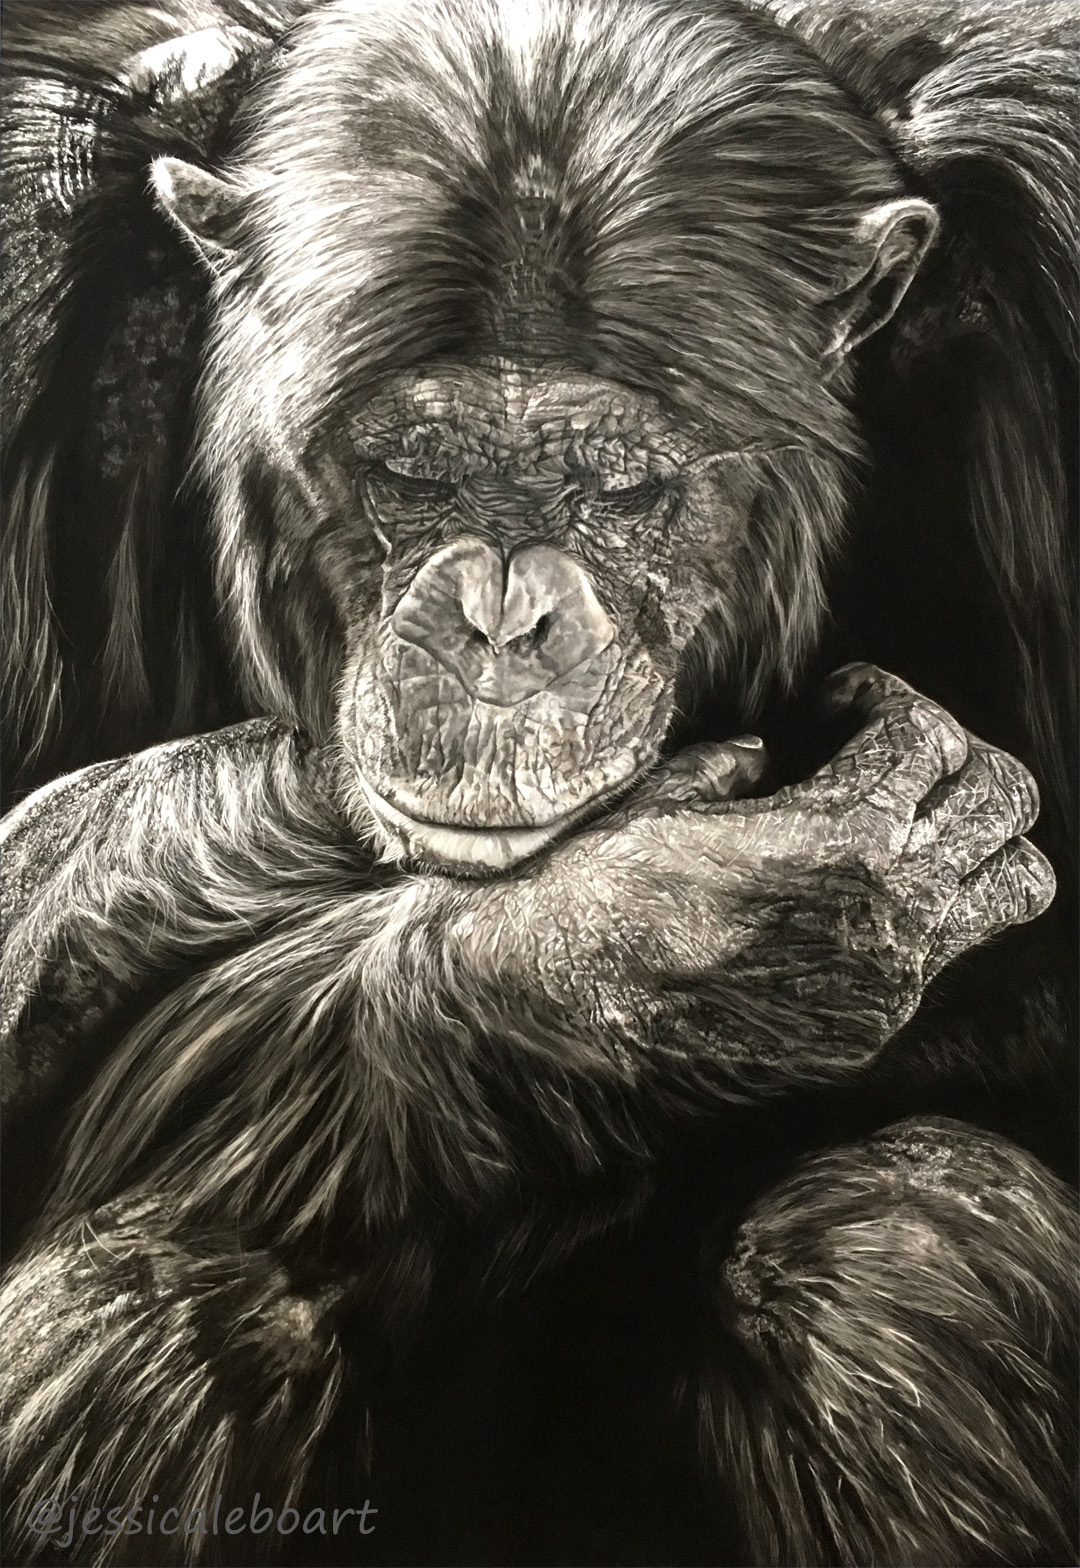 pastel realism wildlife drawing chimpanzee